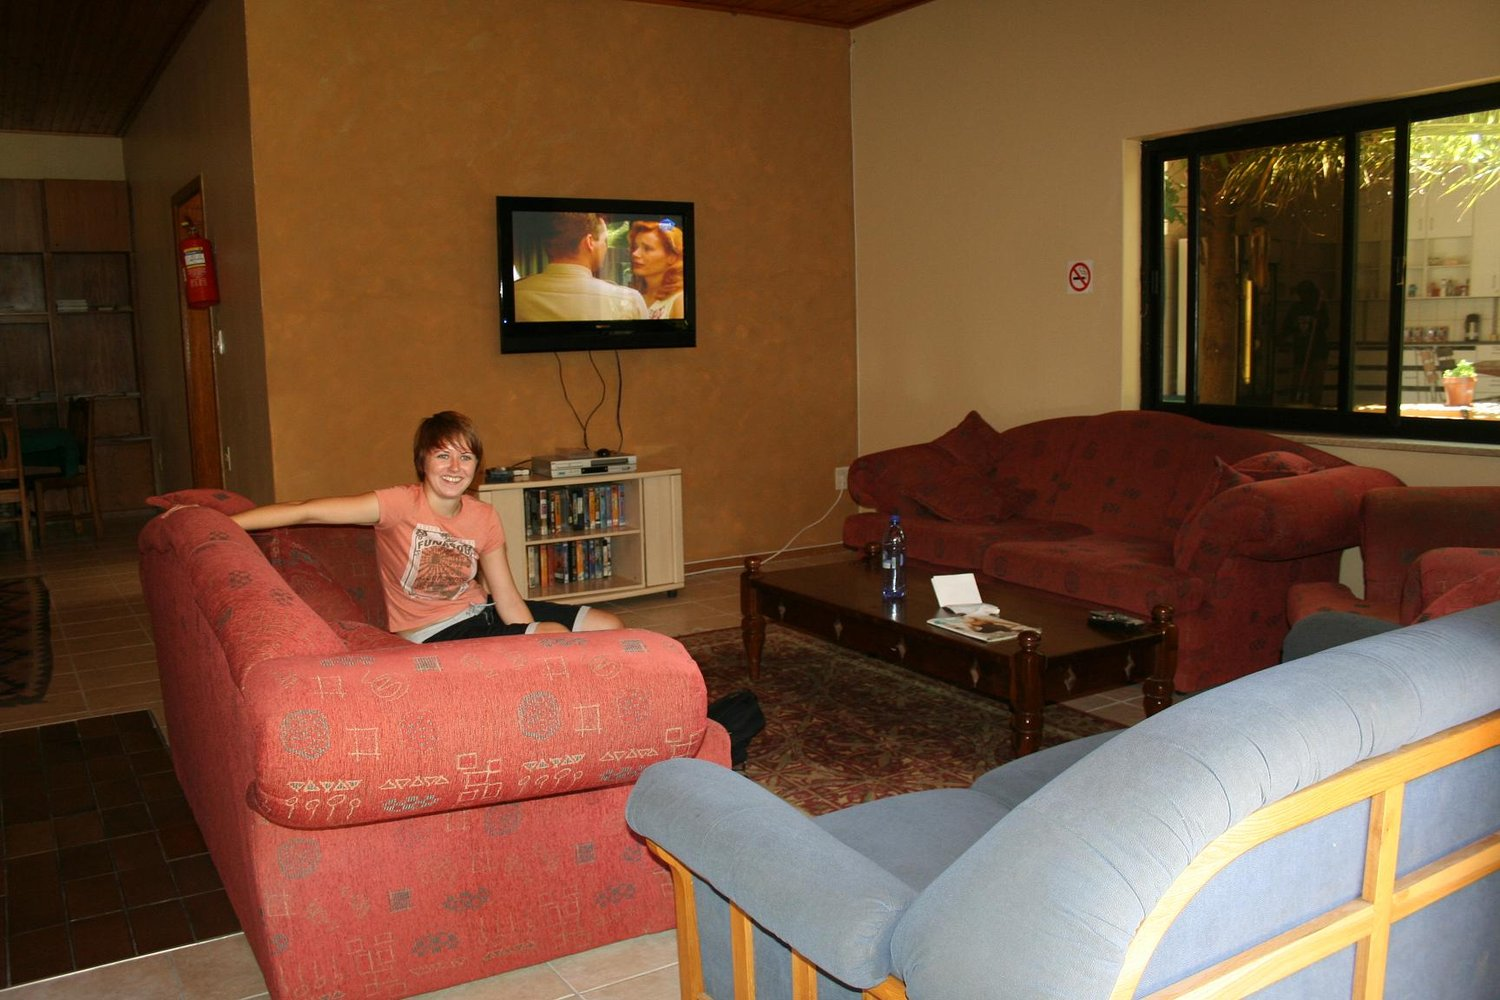 Chameleon backpackers guesthouse windhoek namibia reviews photos altavistaventures Choice Image